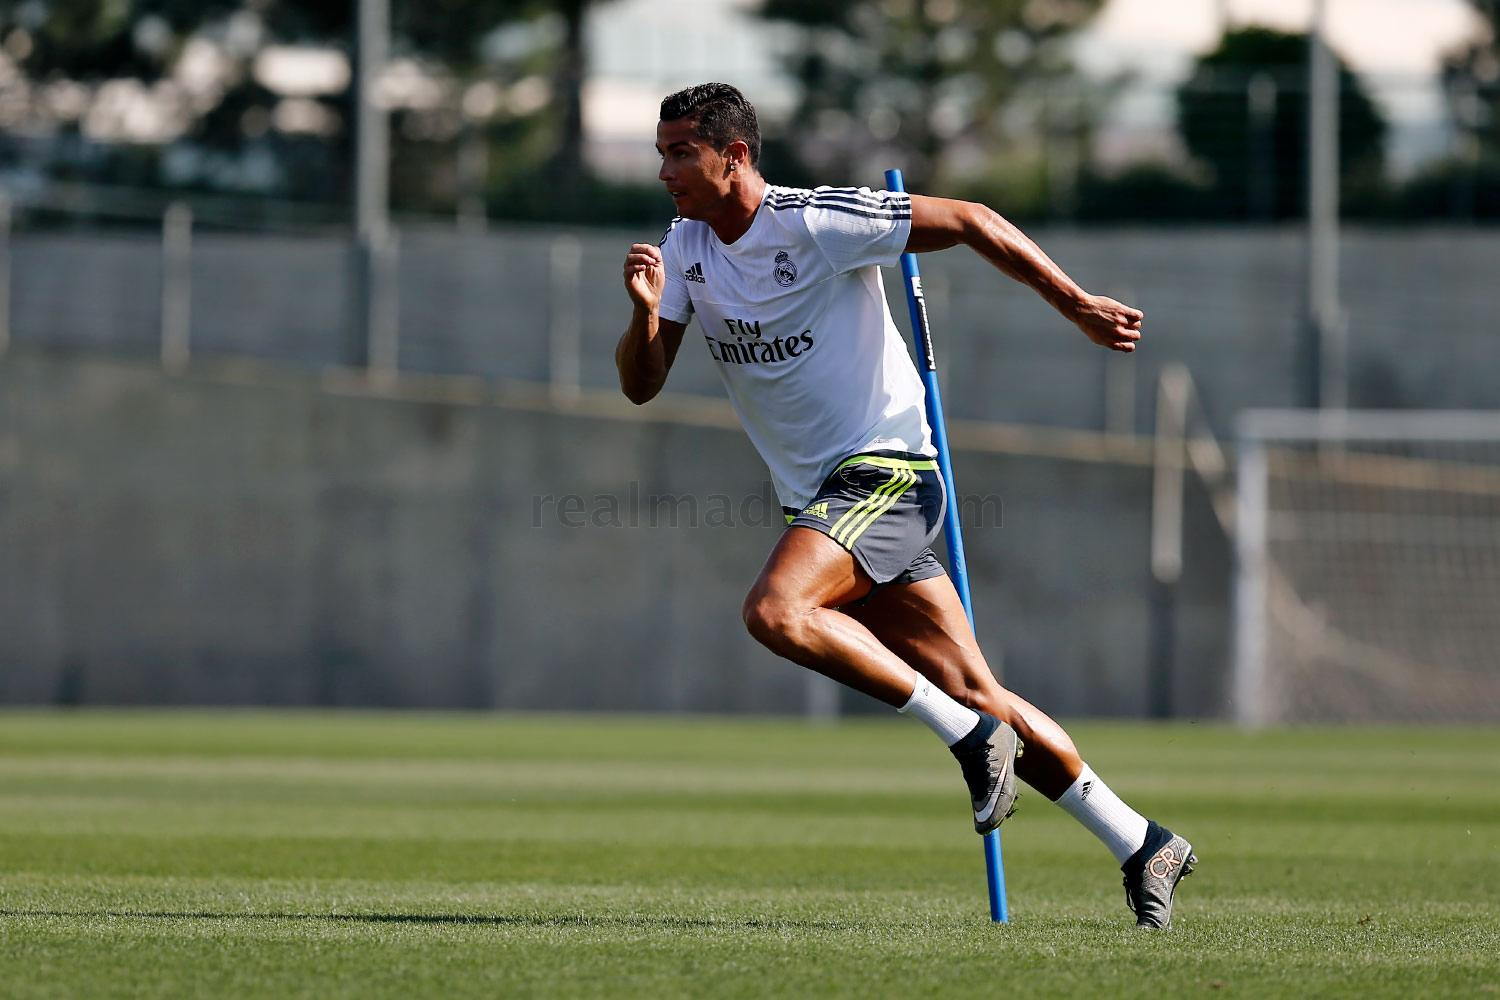 Real Madrid - Entrenamiento - 10-08-2015